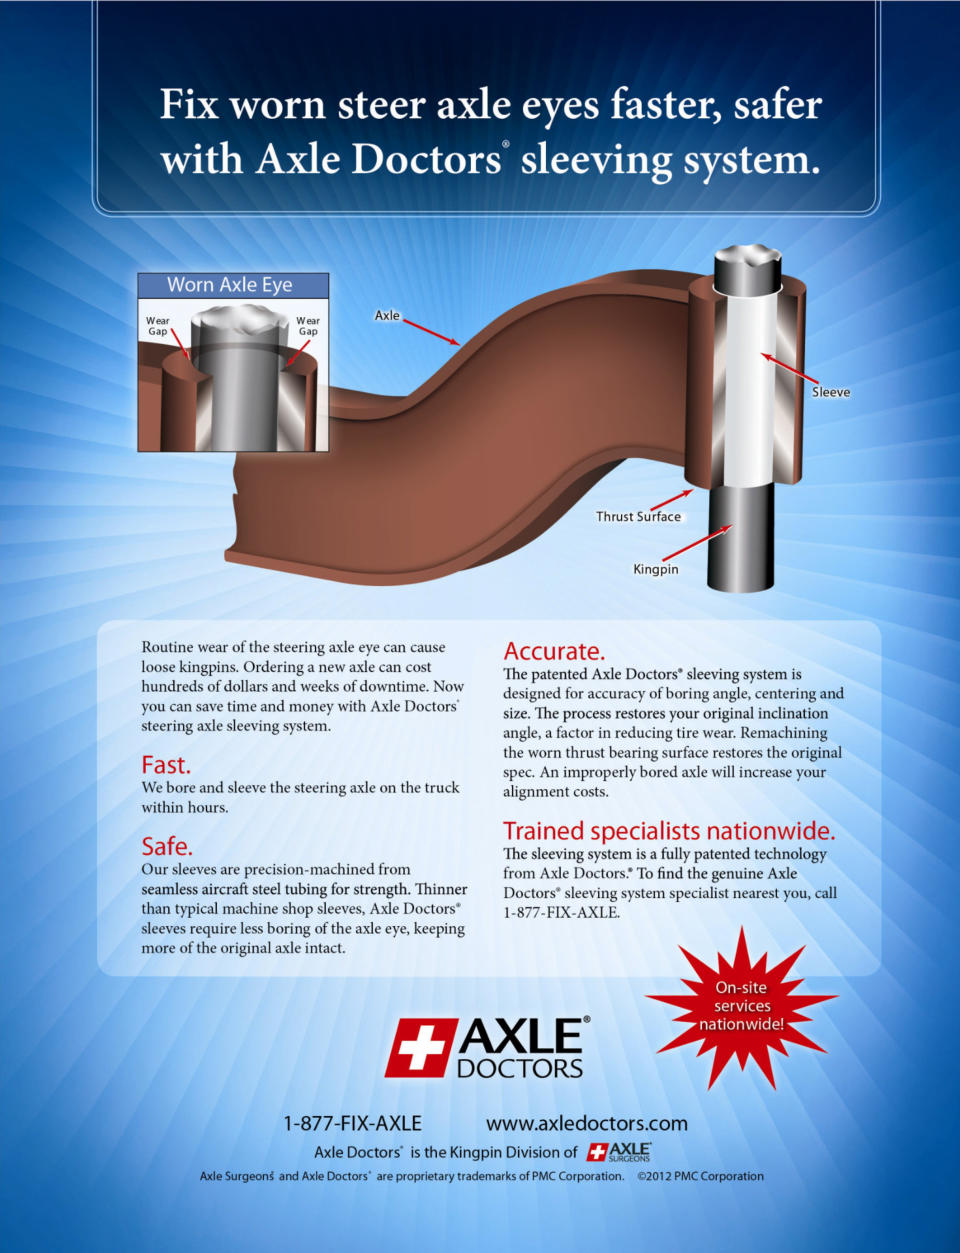 Fix worn steer axle eyes faster and safer with Axle Doctors sleeving system